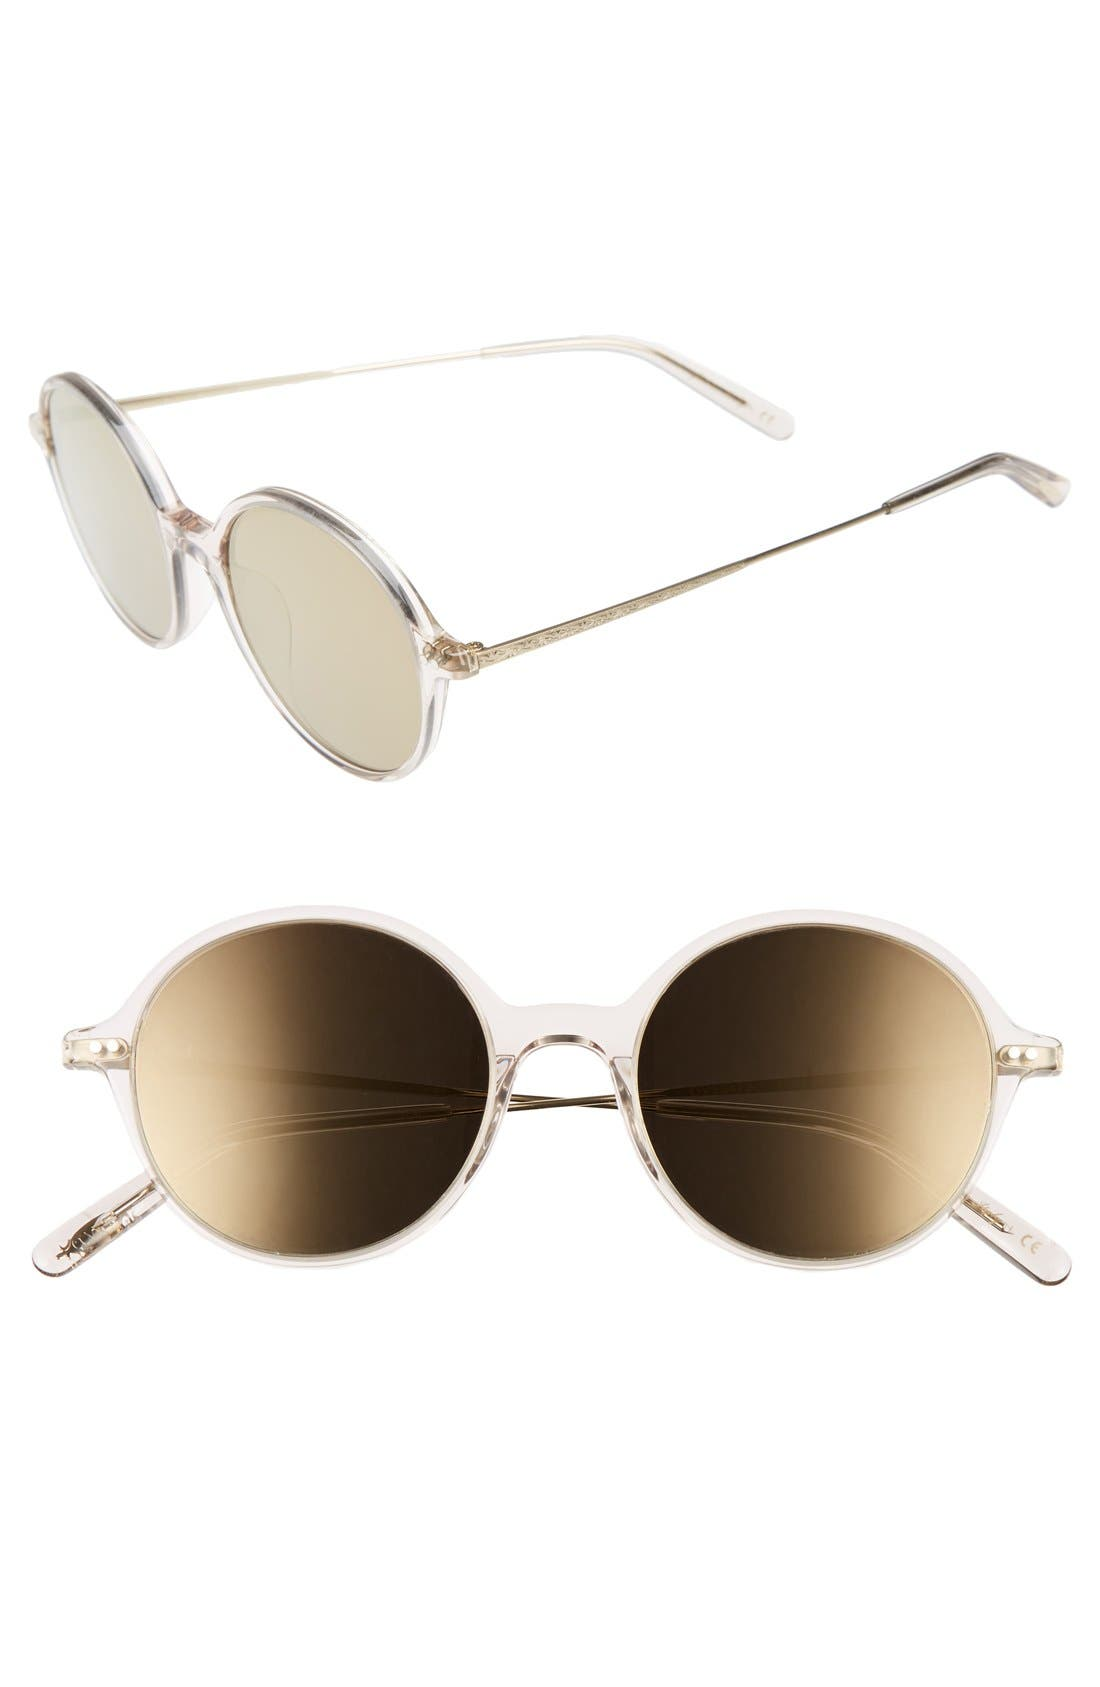 Corby 51mm Round Sunglasses,                             Main thumbnail 3, color,